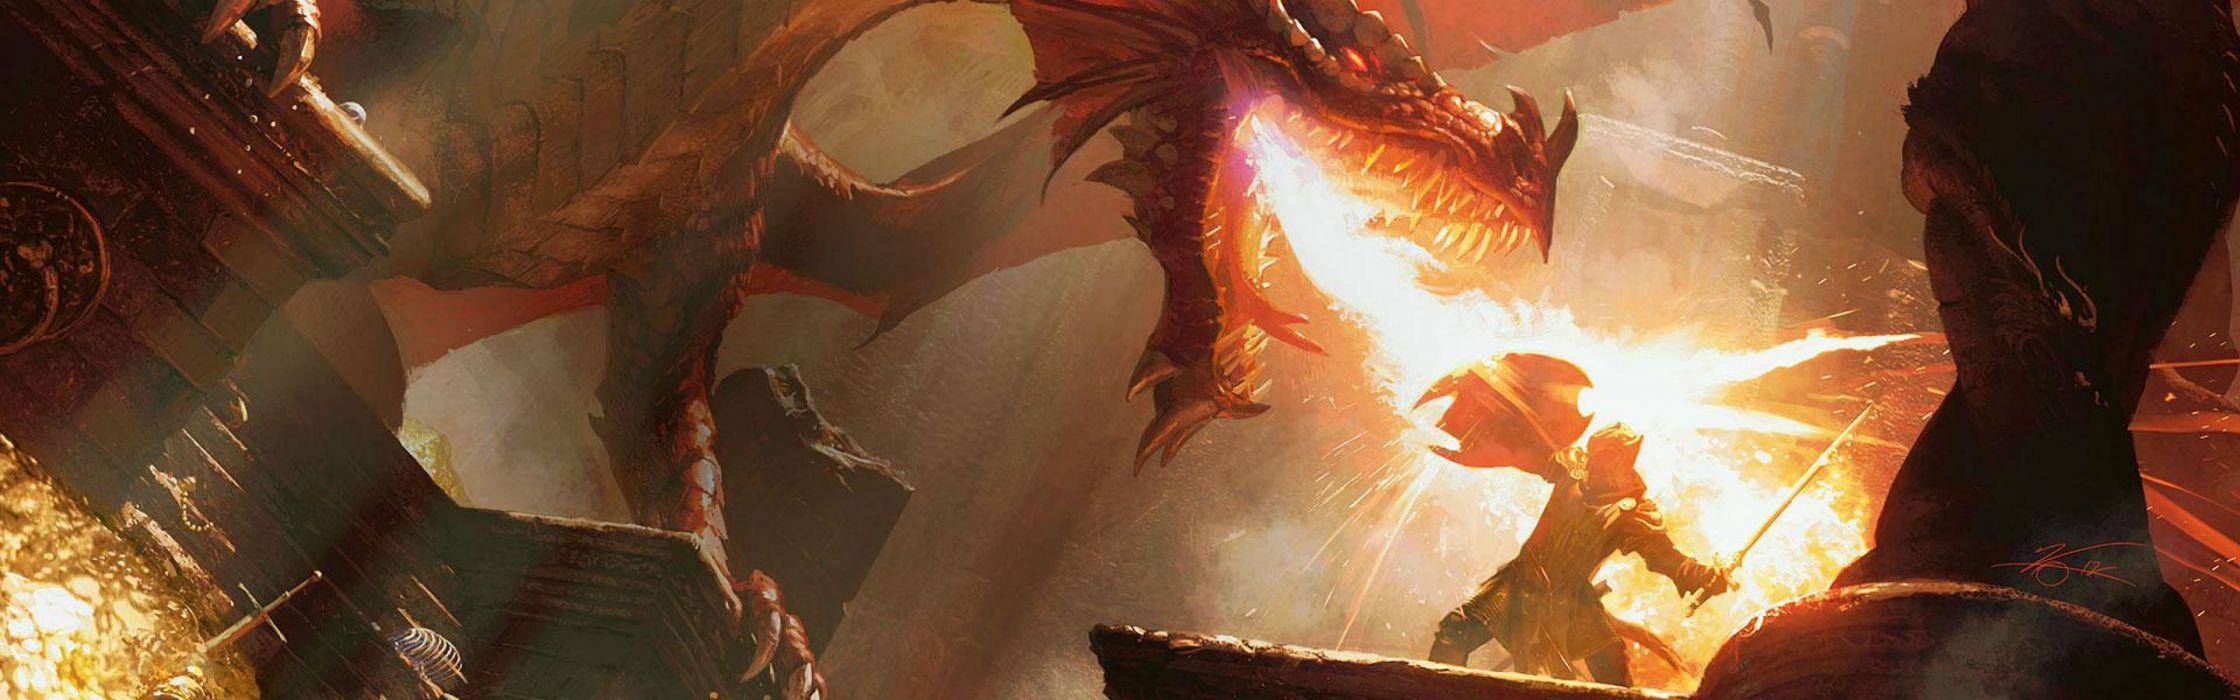 DUNGEONS DRAGONS Forgotten Realms magic 1scl rpg action adventure puzzle fantasy warrior dragon wallpaper